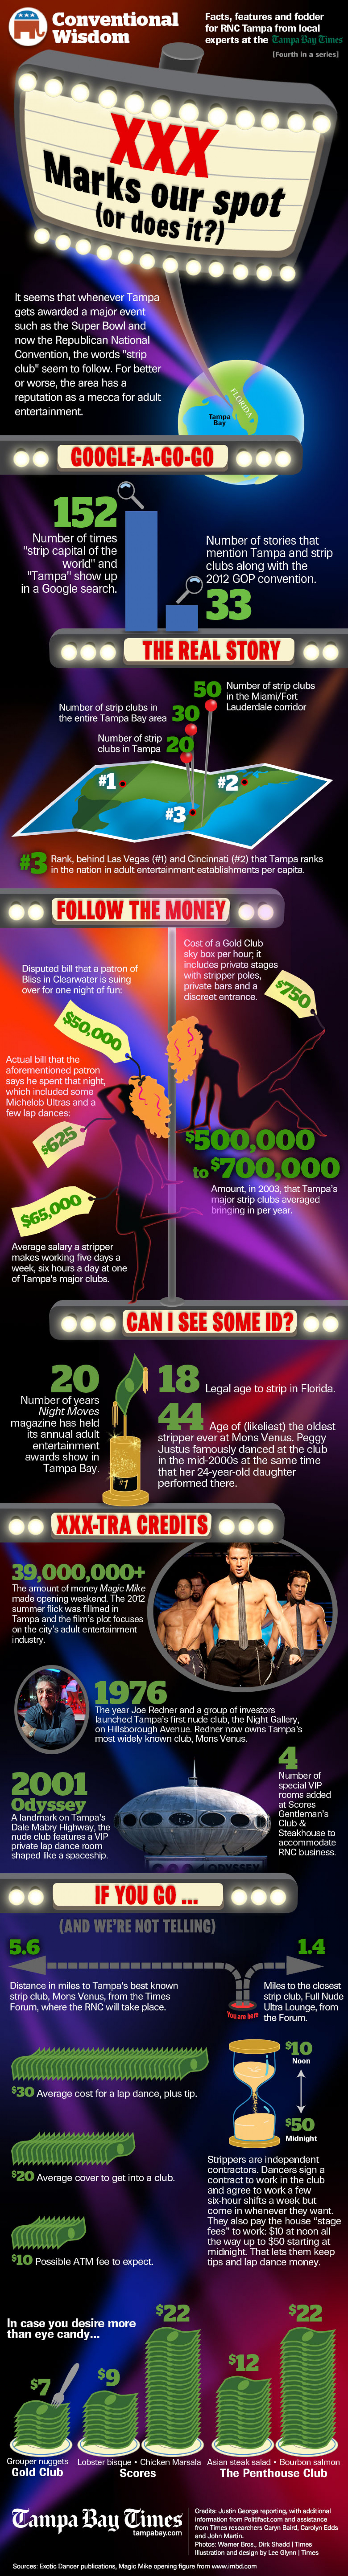 Conventional Wisdom: Tampa's spicier reputation  Infographic